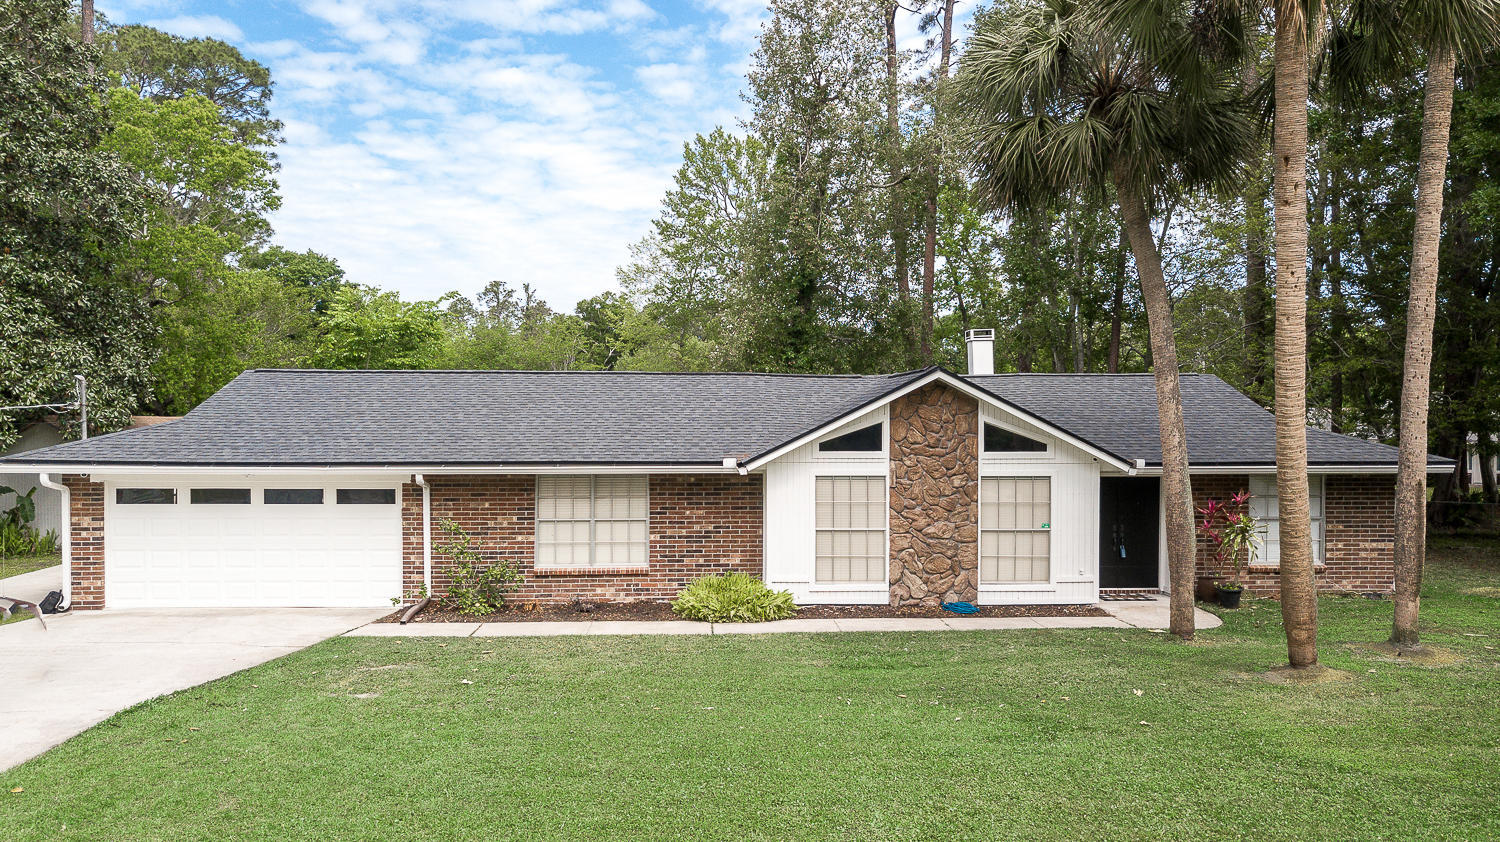 345 RAGGEDY POINT, FLEMING ISLAND, FLORIDA 32003, 3 Bedrooms Bedrooms, ,2 BathroomsBathrooms,Residential,For sale,RAGGEDY POINT,1105155